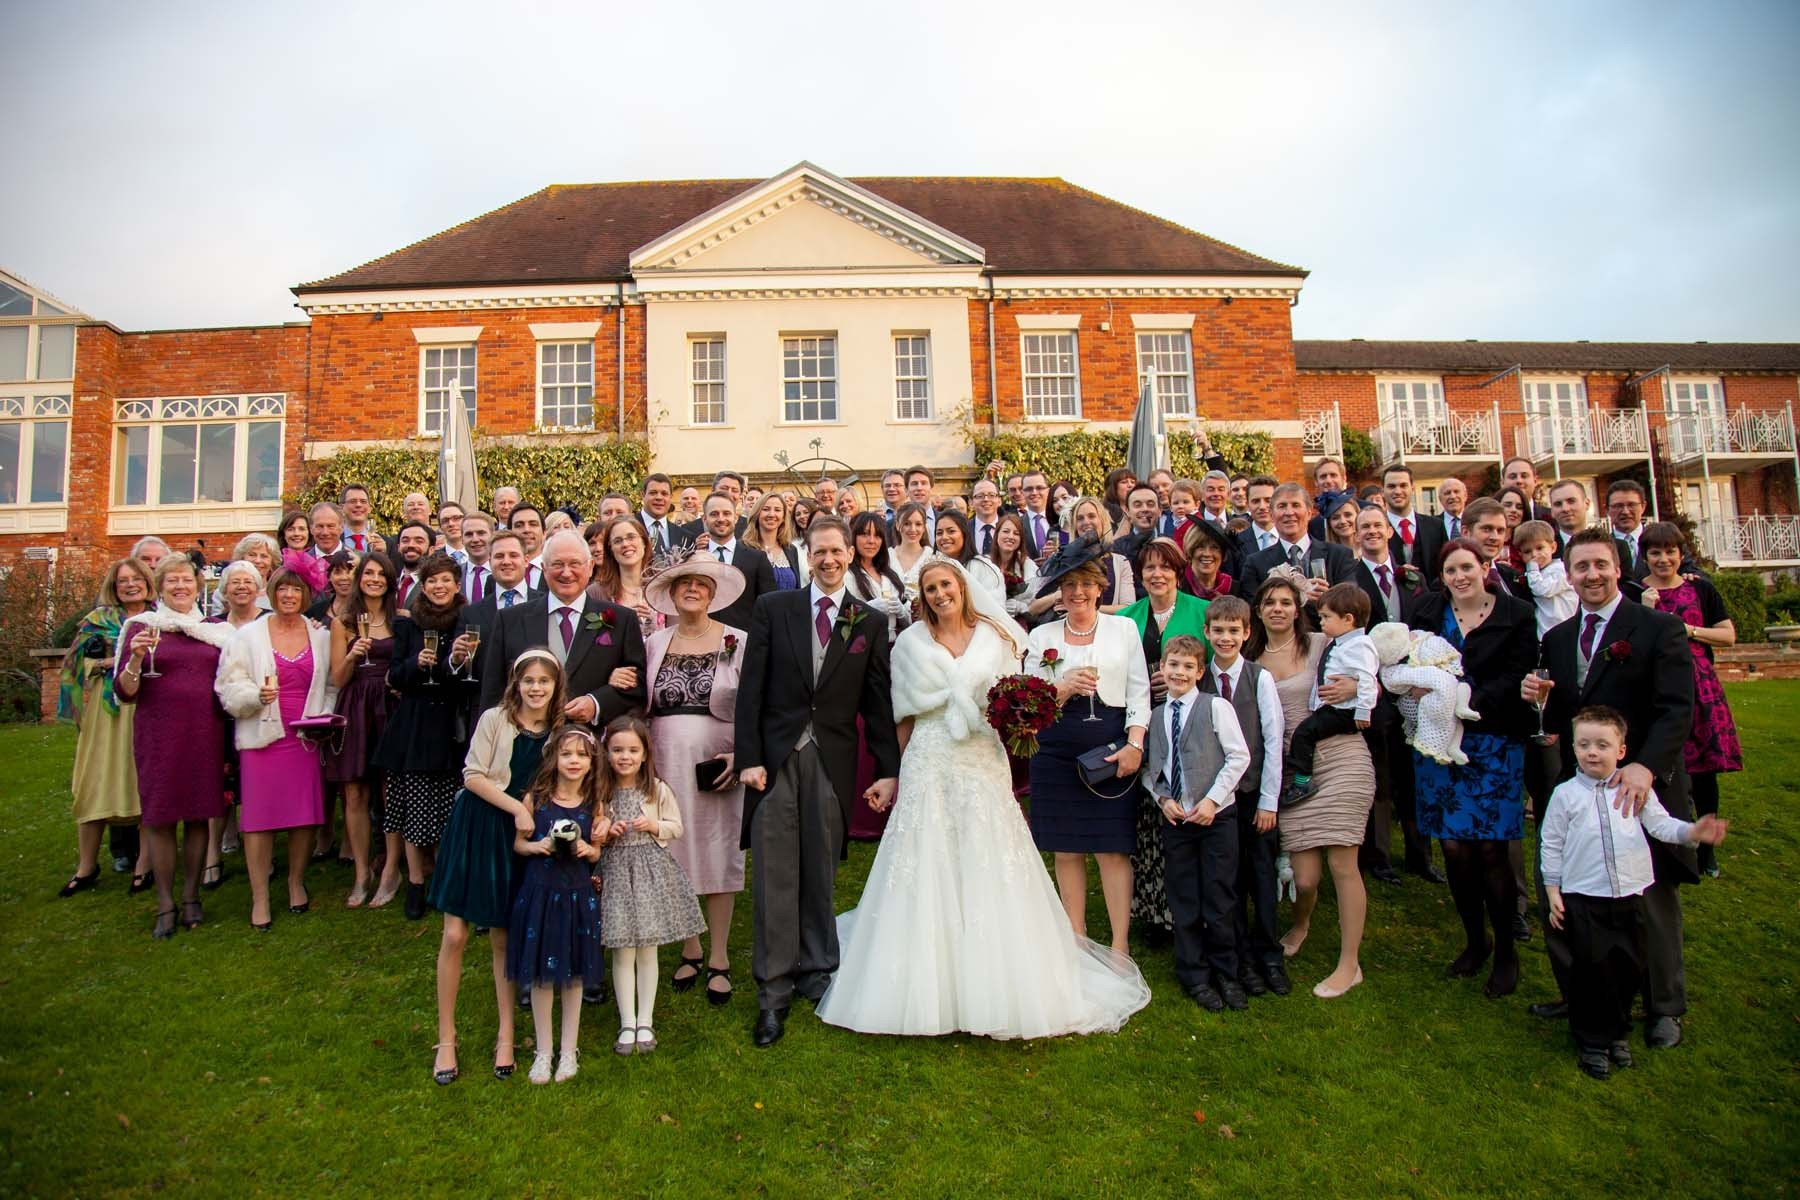 Sussex & Surrey Wedding Photographer - Guests & Groups (17)